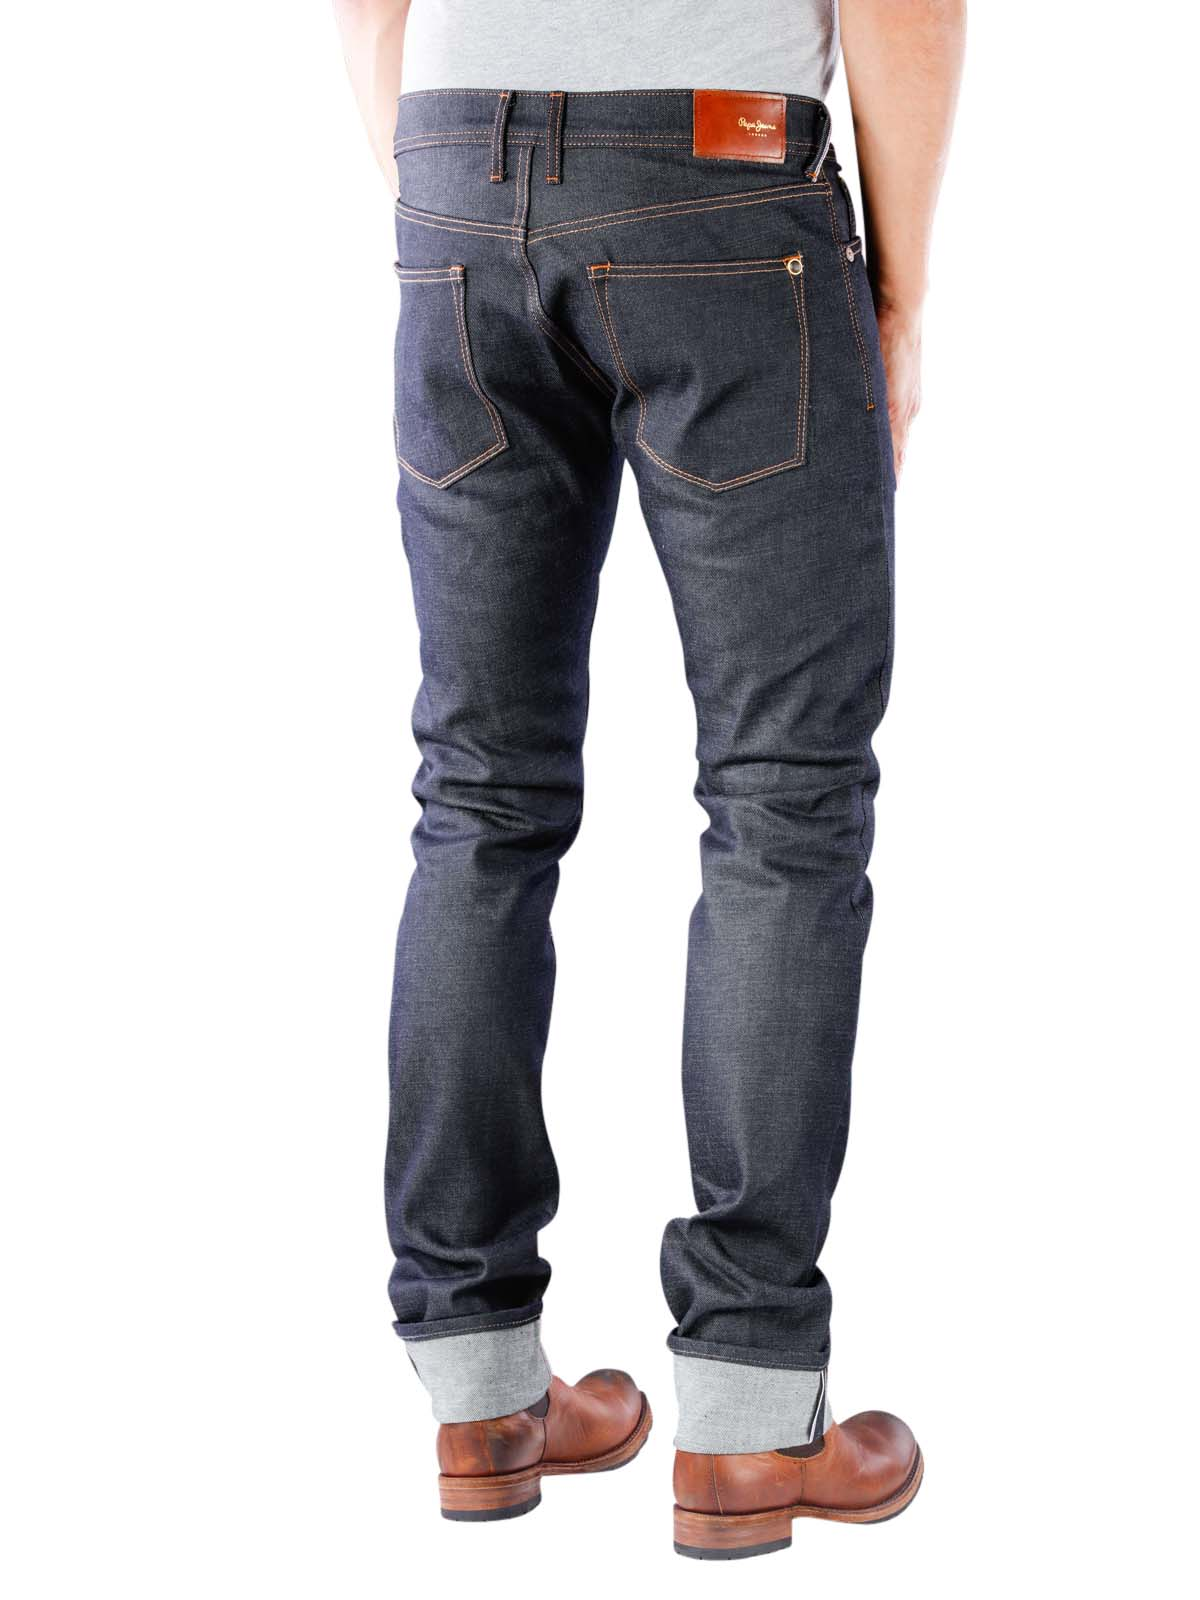 Fast Jeans Mcjeans Oz Stanley Free 14 Denim Shipping DeliveryPepe Selvedge ch Returns Tapered nOPN8kX0w